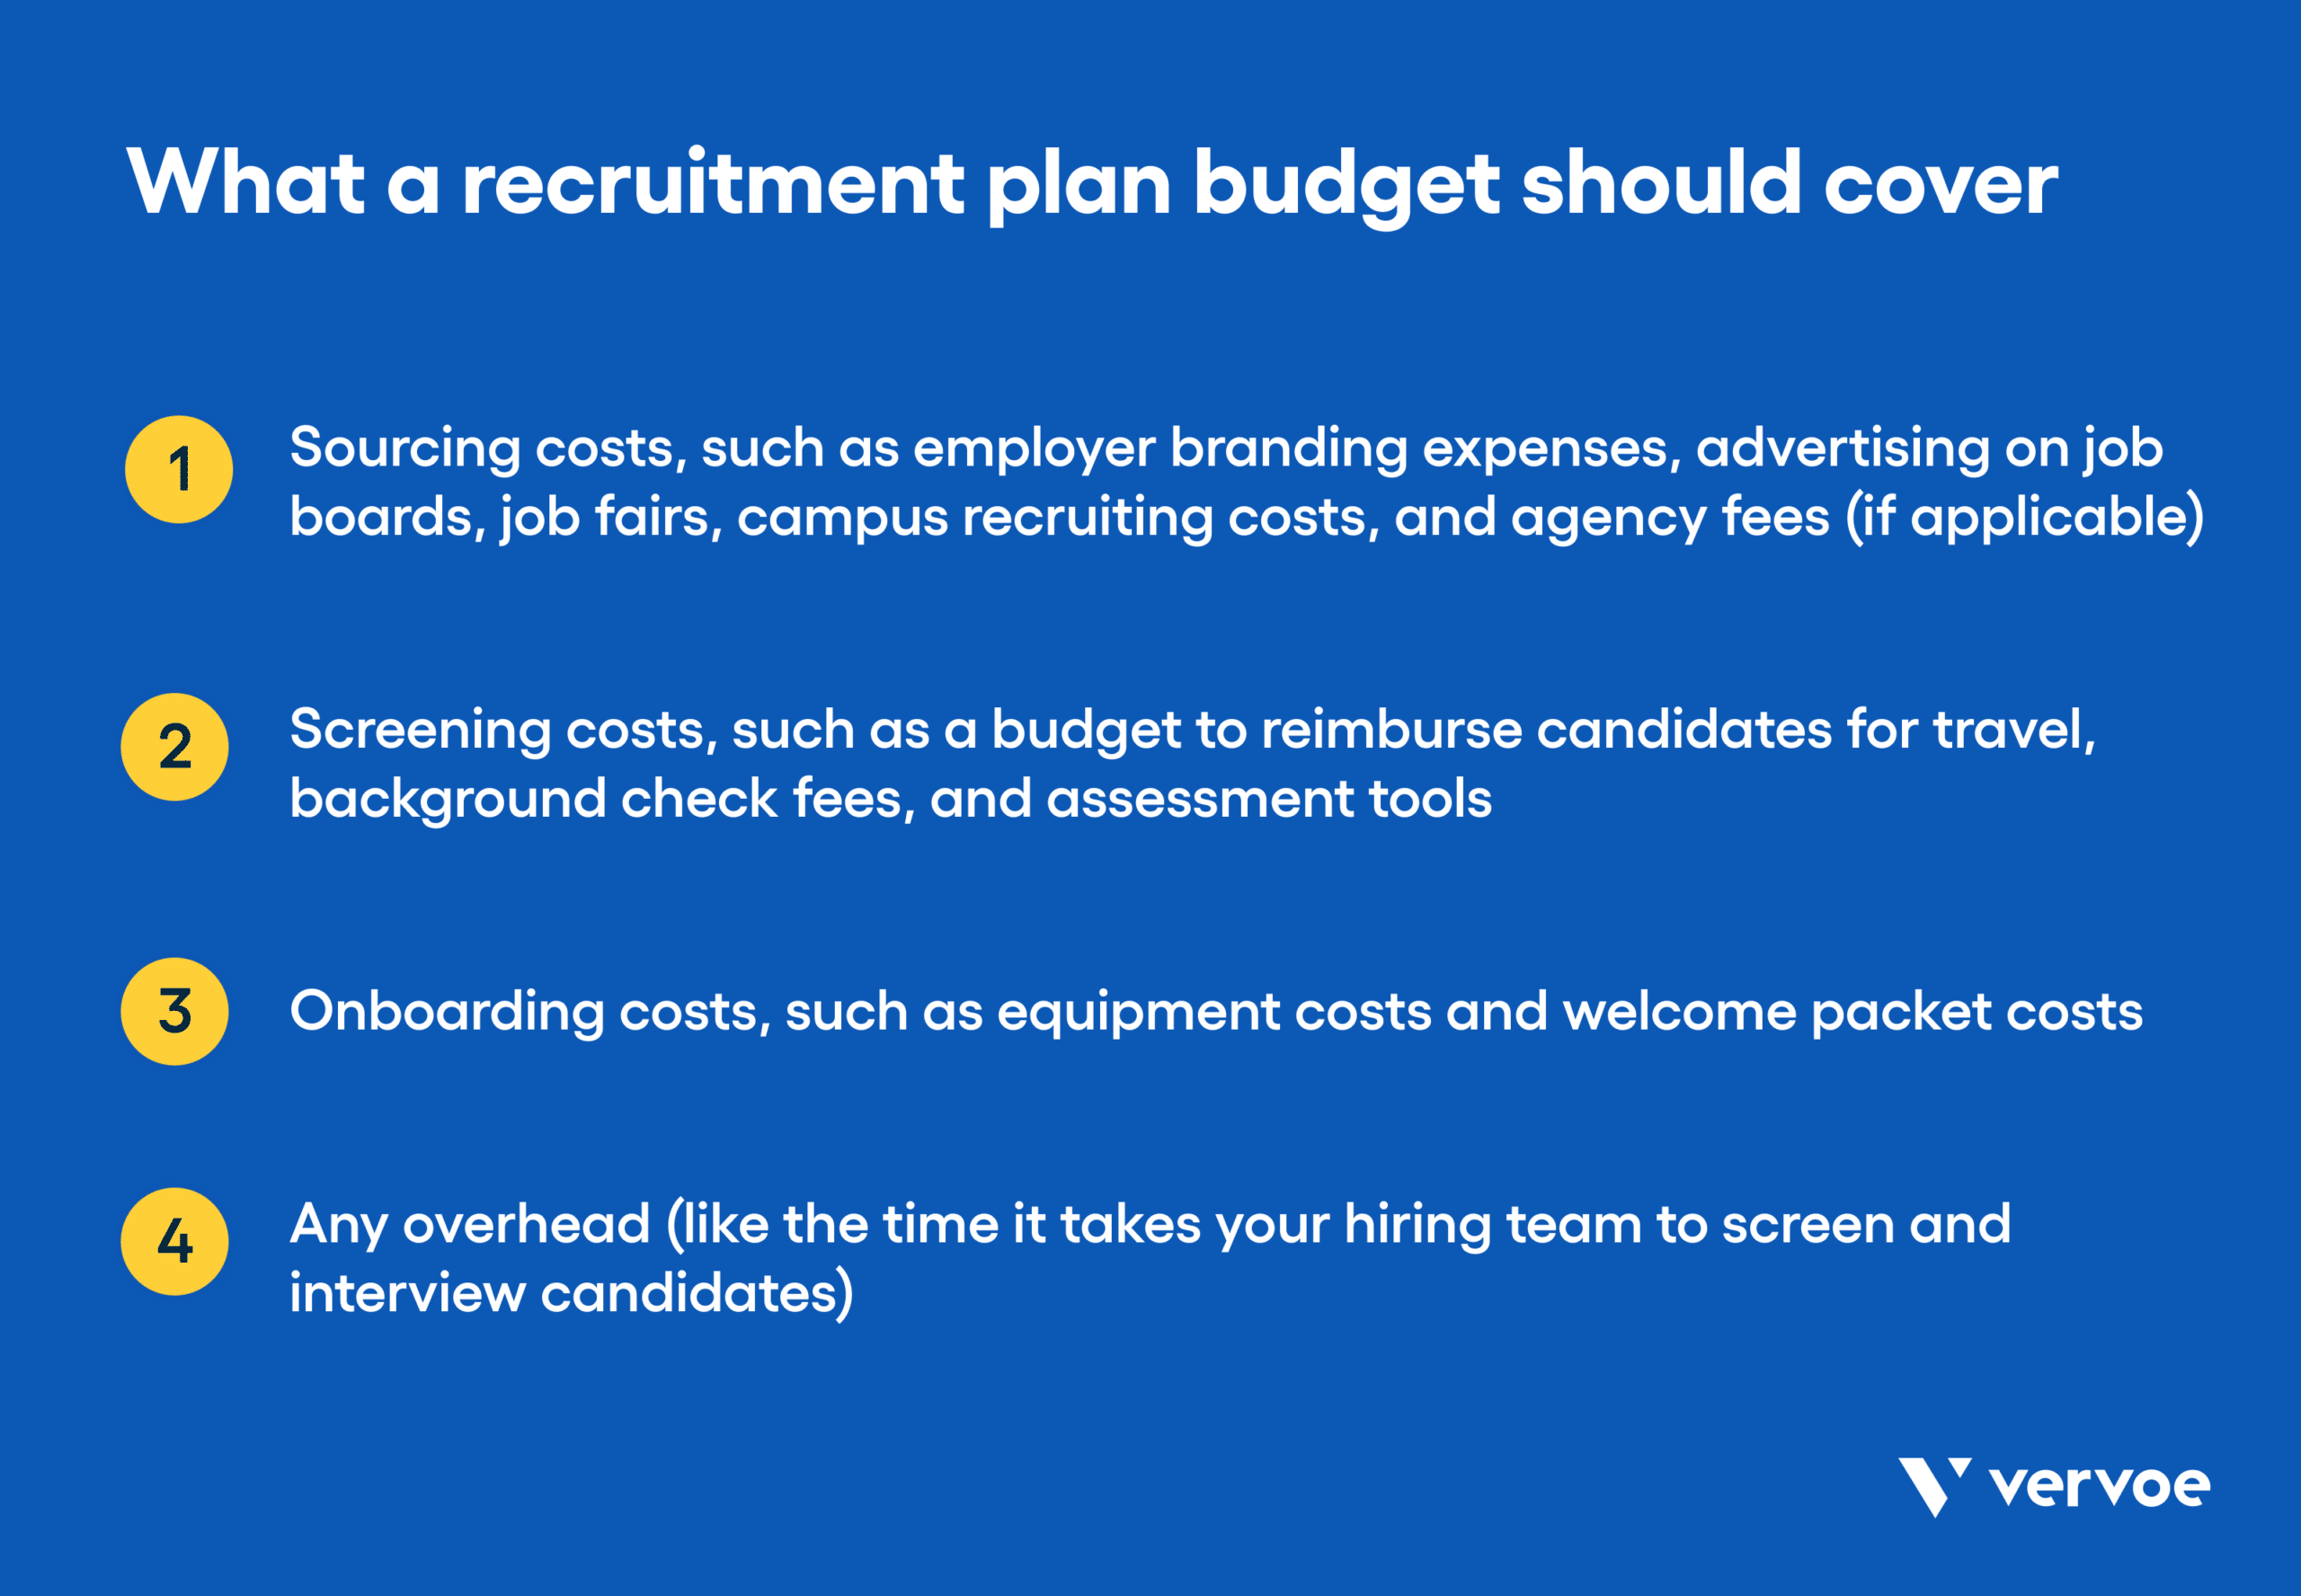 Graphic showing what a recruitment plan budget should cover